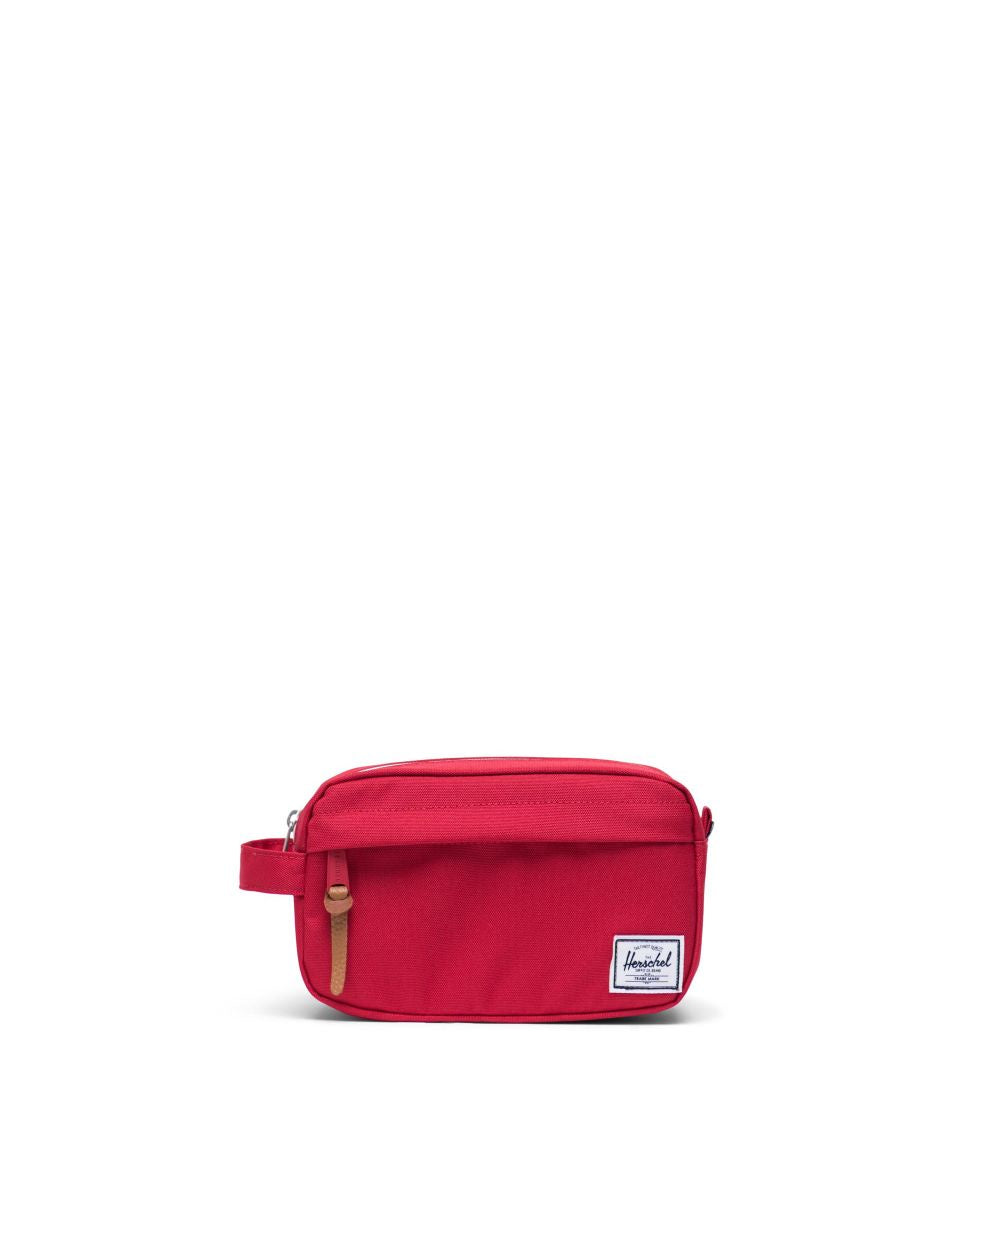 HERSCHEL - CHAPTER TRAVEL KIT CARRY ON IN RED